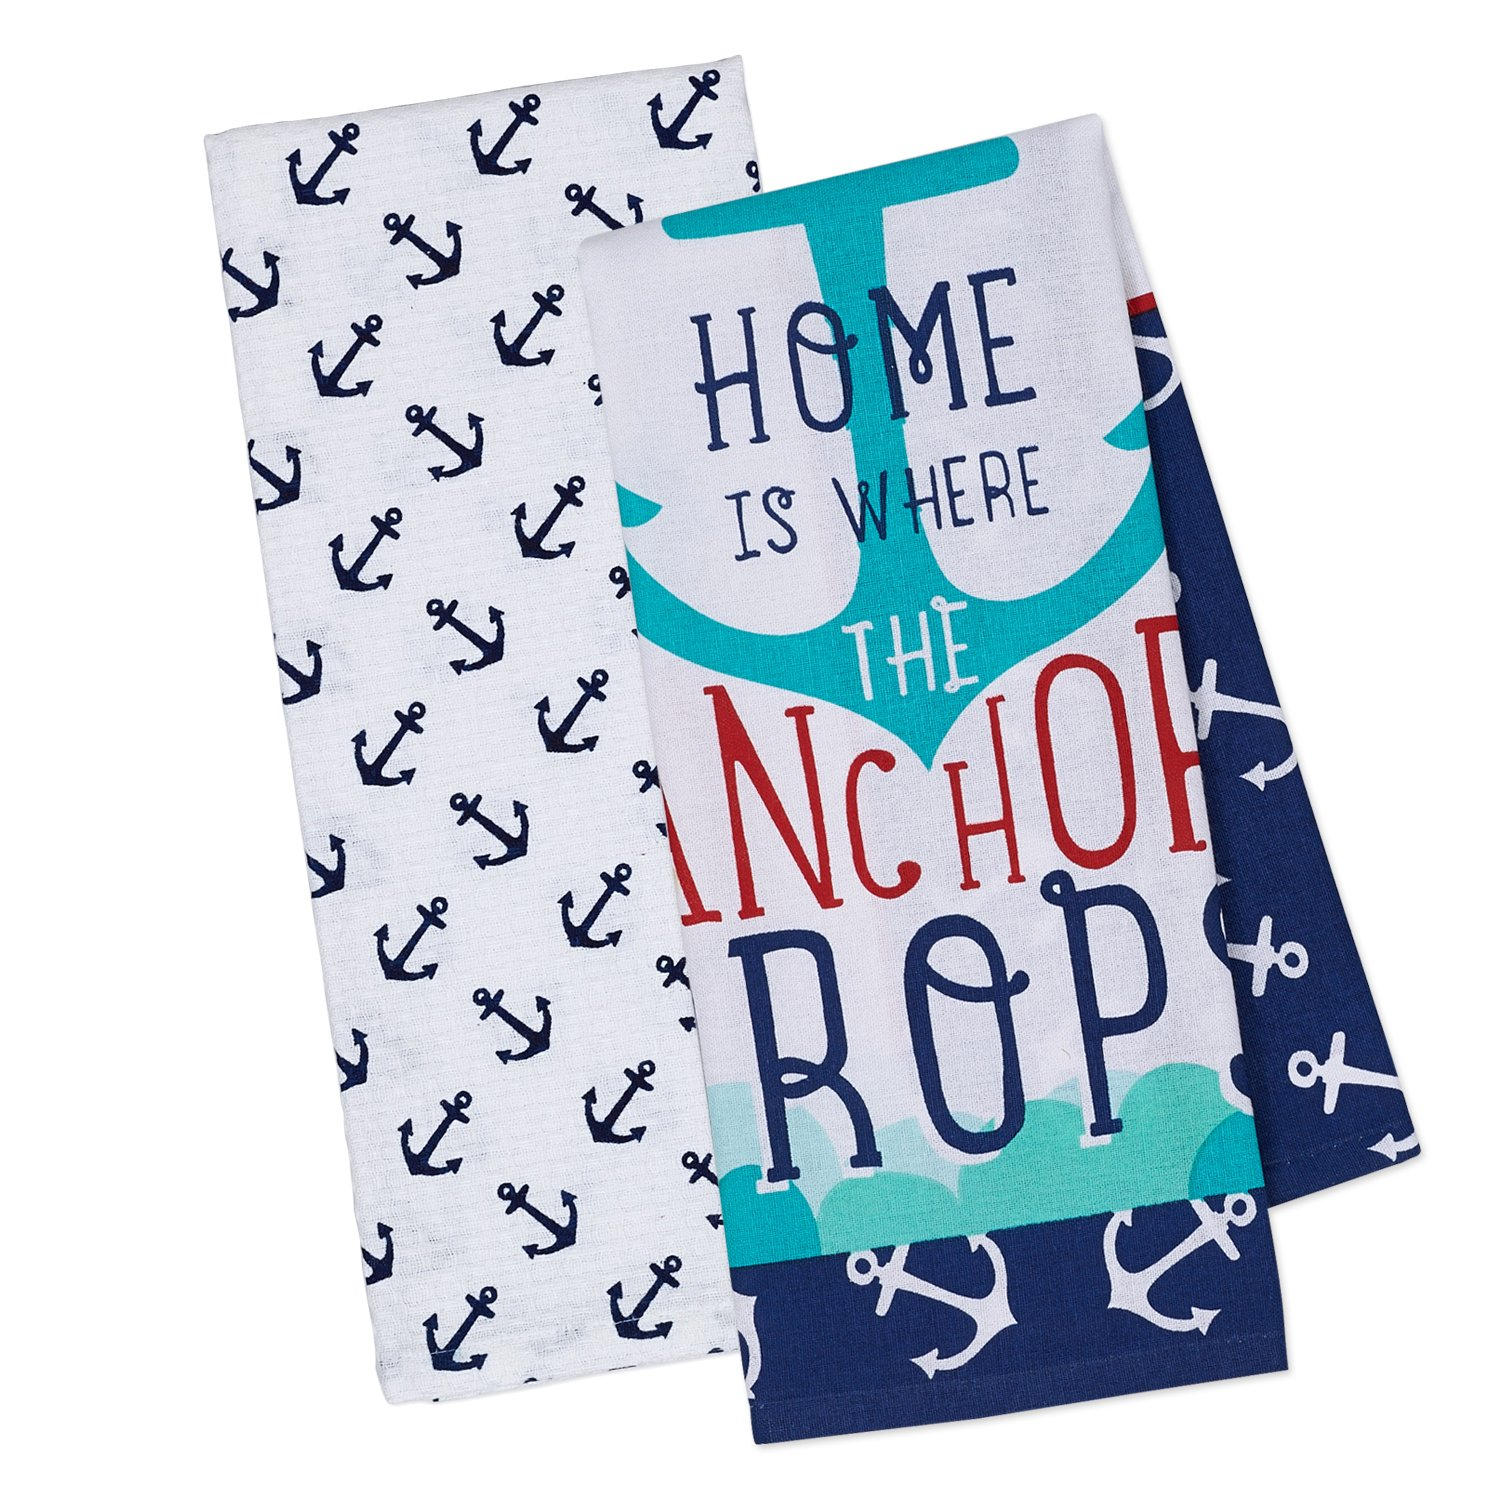 """DII Cotton Summer Printed Dish Towels, 18x28"""" Set of 2, Decorative Oversized Kitchen Towels, Perfect for Every Day Home Kitchen, Holidays and Housewarming Gifts-Anchors"""